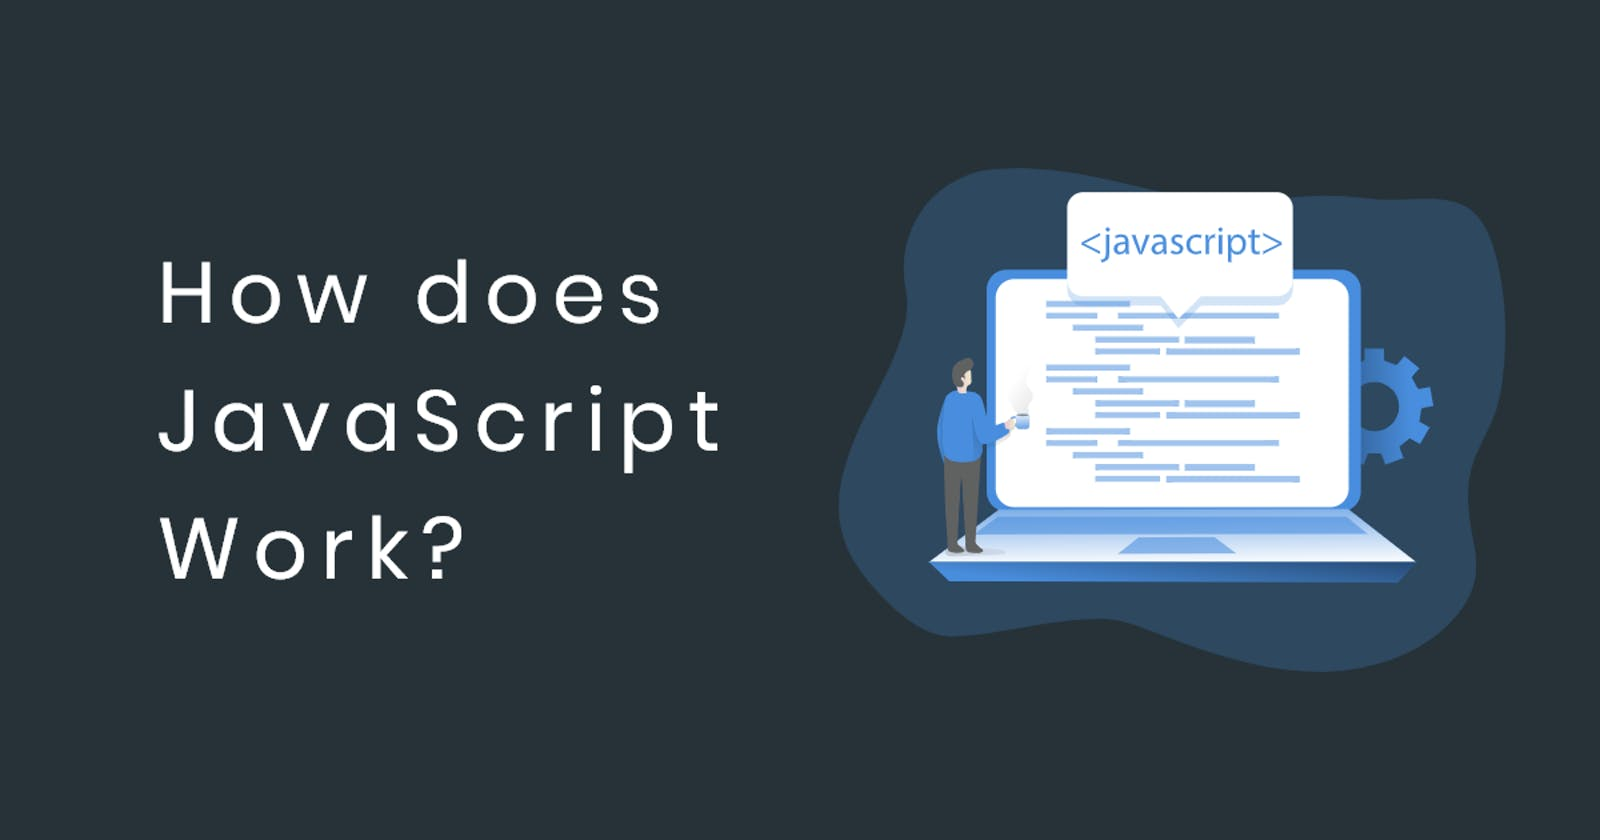 How does JavaScript work?